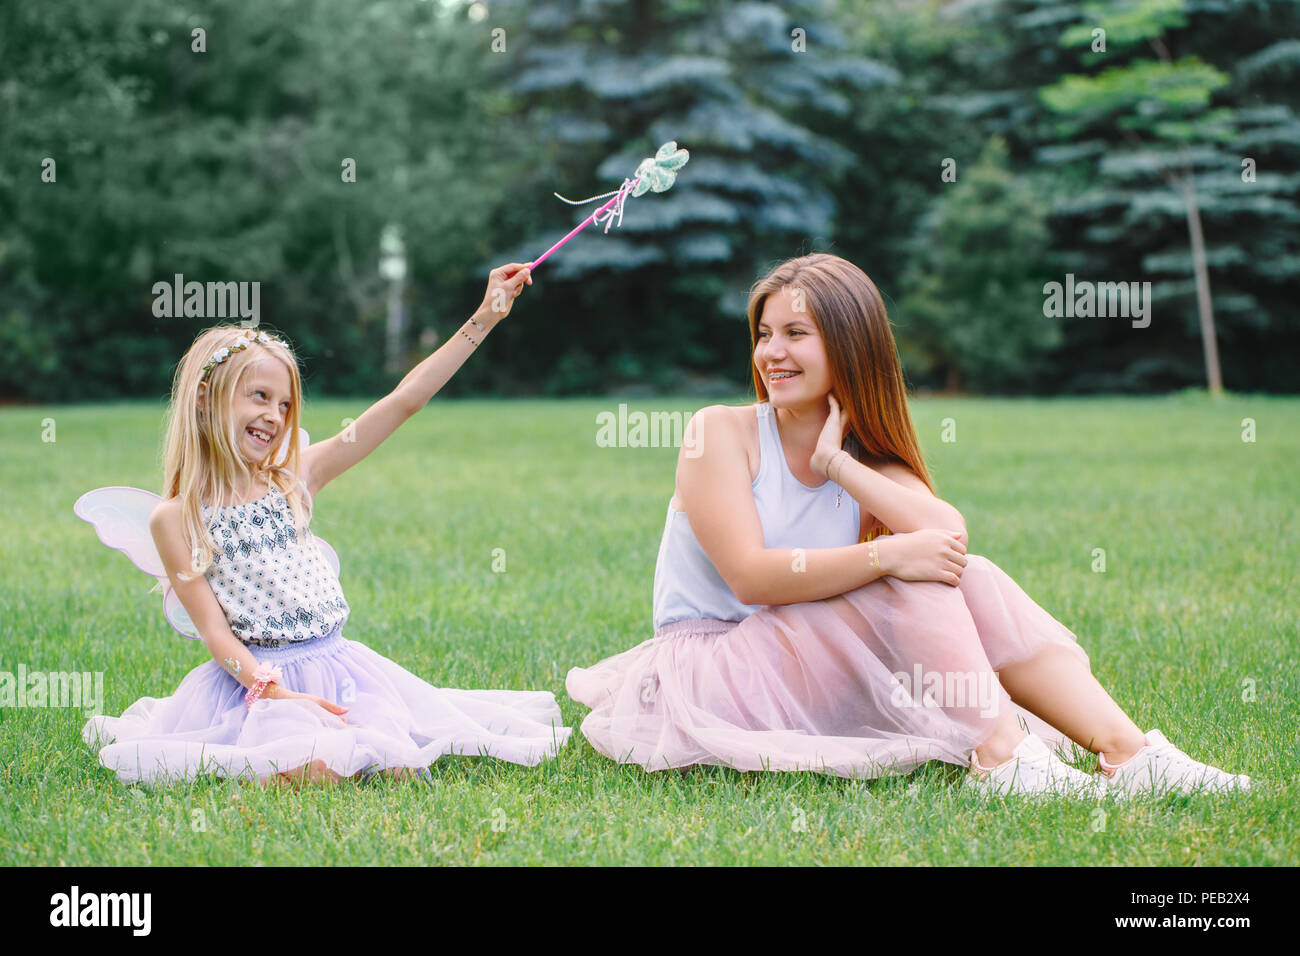 Portrait of two smiling funny Caucasian girls sisters wearing pink tutu tulle skirts in park forest meadow at sunset. Friends having fun together. Gir - Stock Image